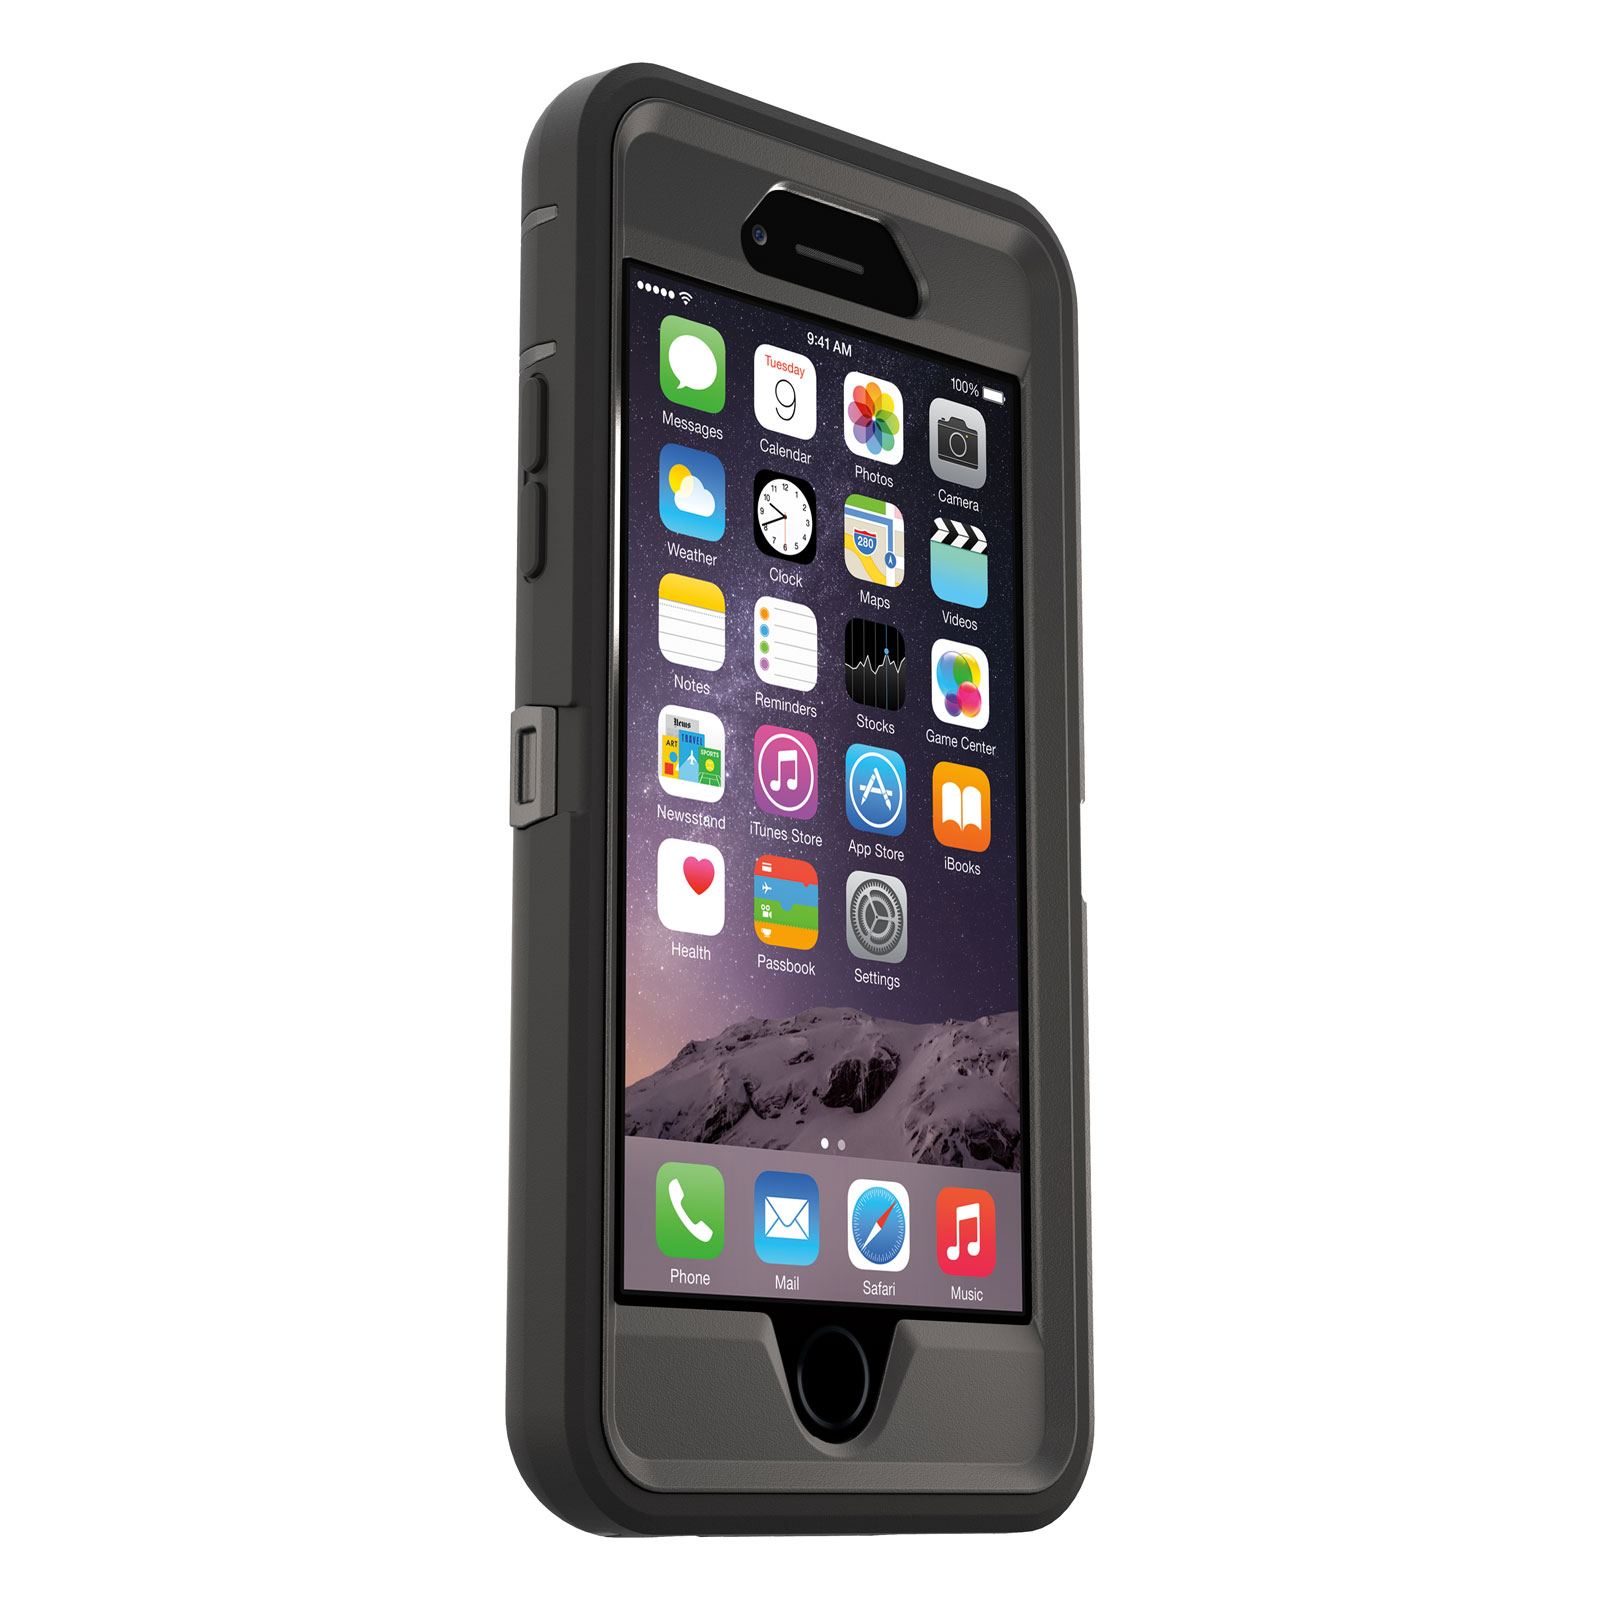 otterbox defender noir iphone 6 6s etui t l phone otterbox sur. Black Bedroom Furniture Sets. Home Design Ideas